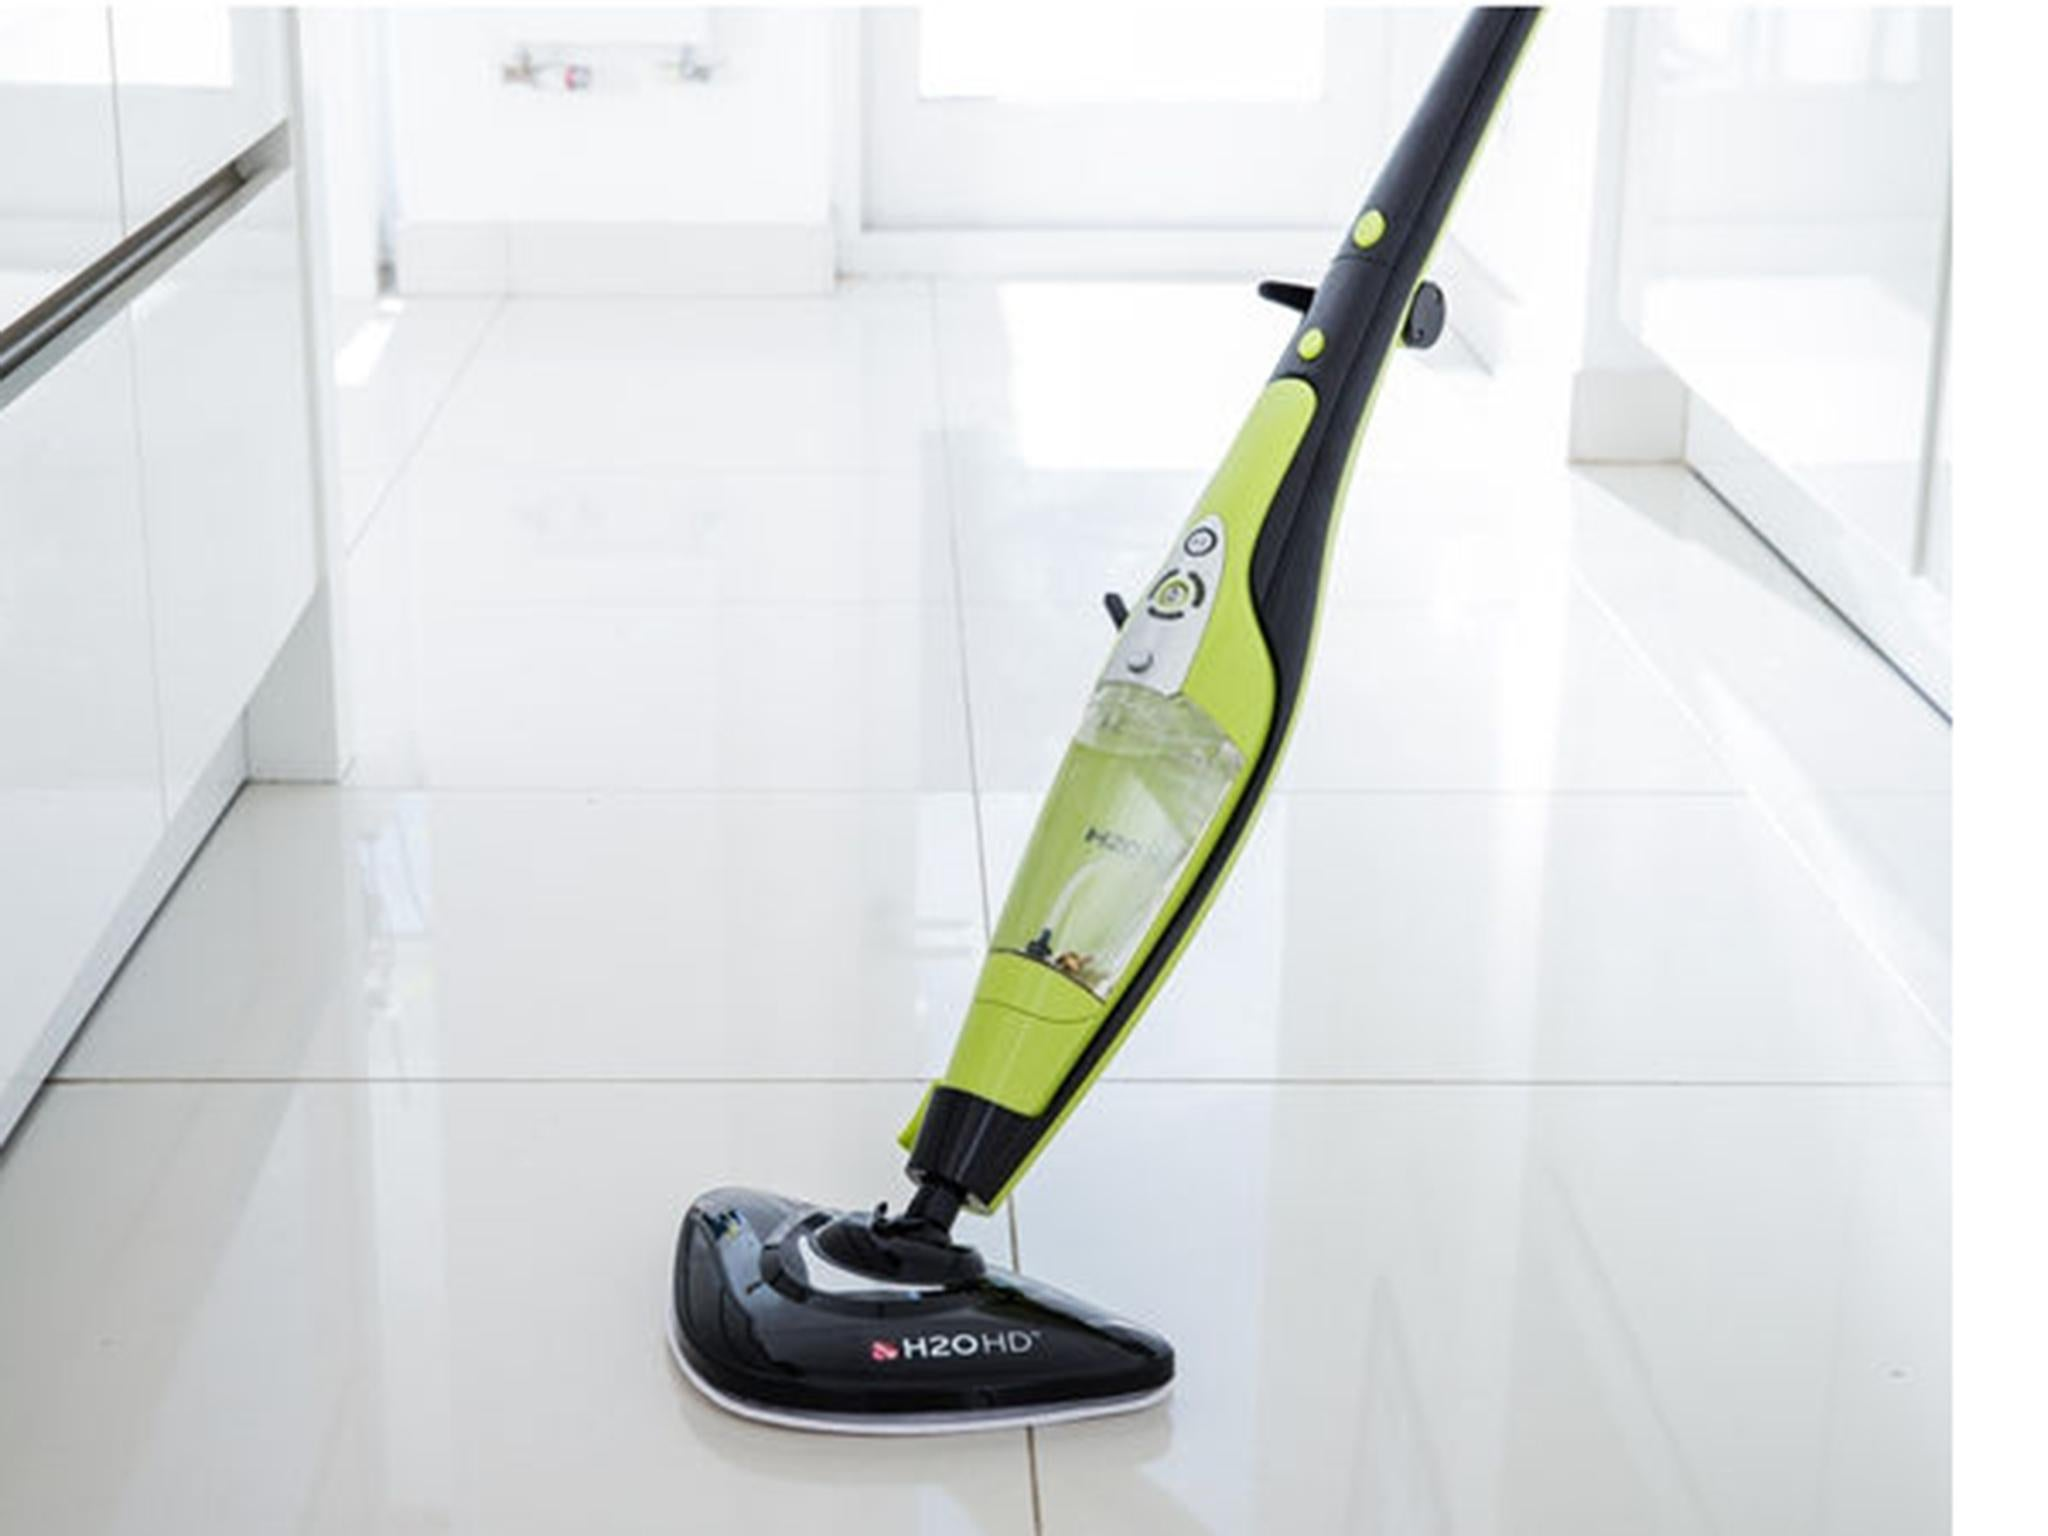 7 Best Steam Cleaners The Independent